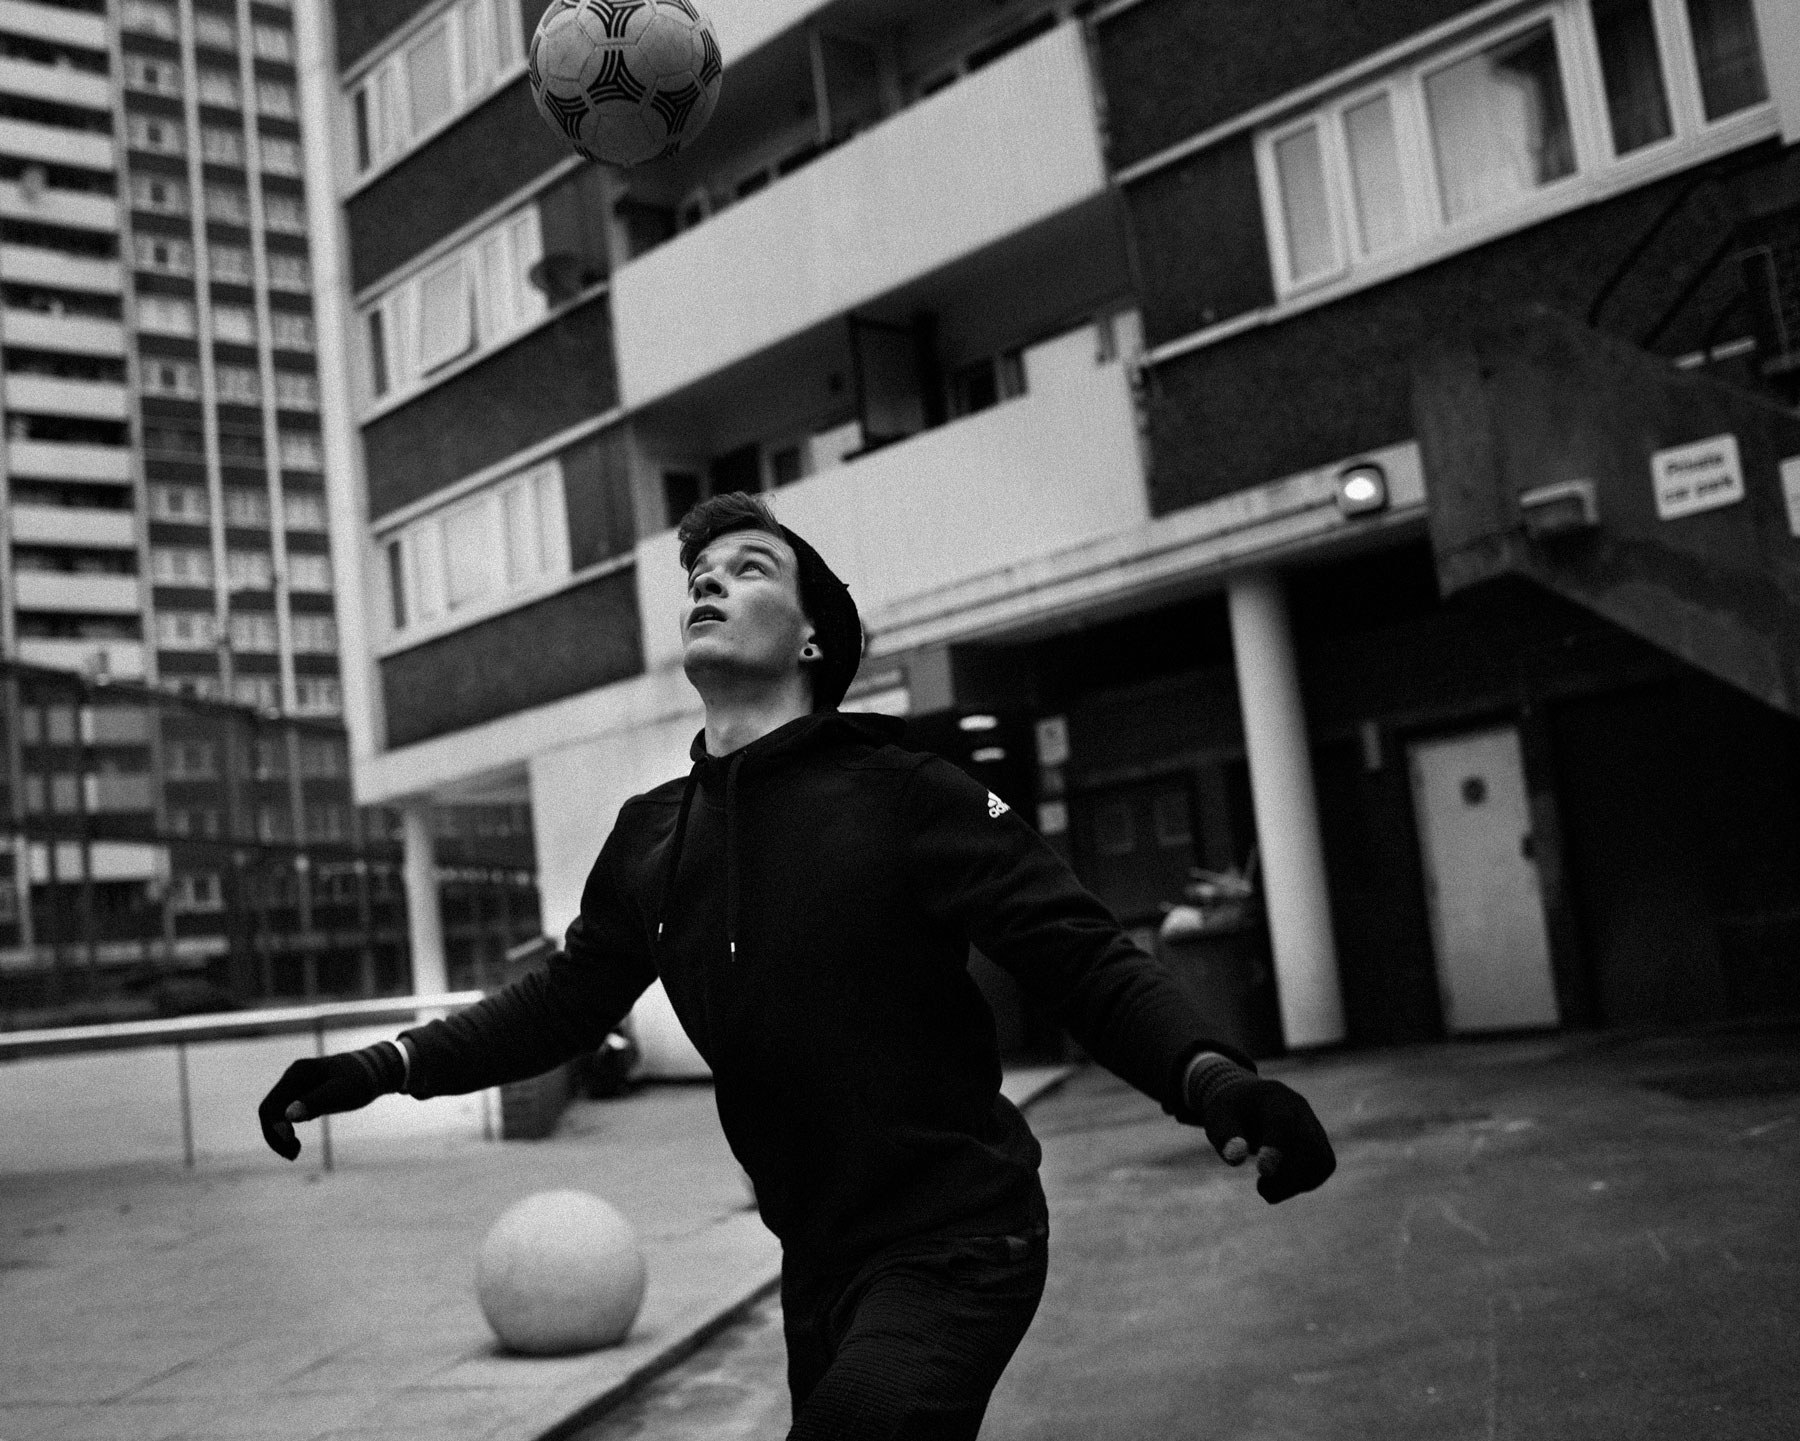 Adidas_Street_Football_Shot_01_On_The_Move_0091-copy